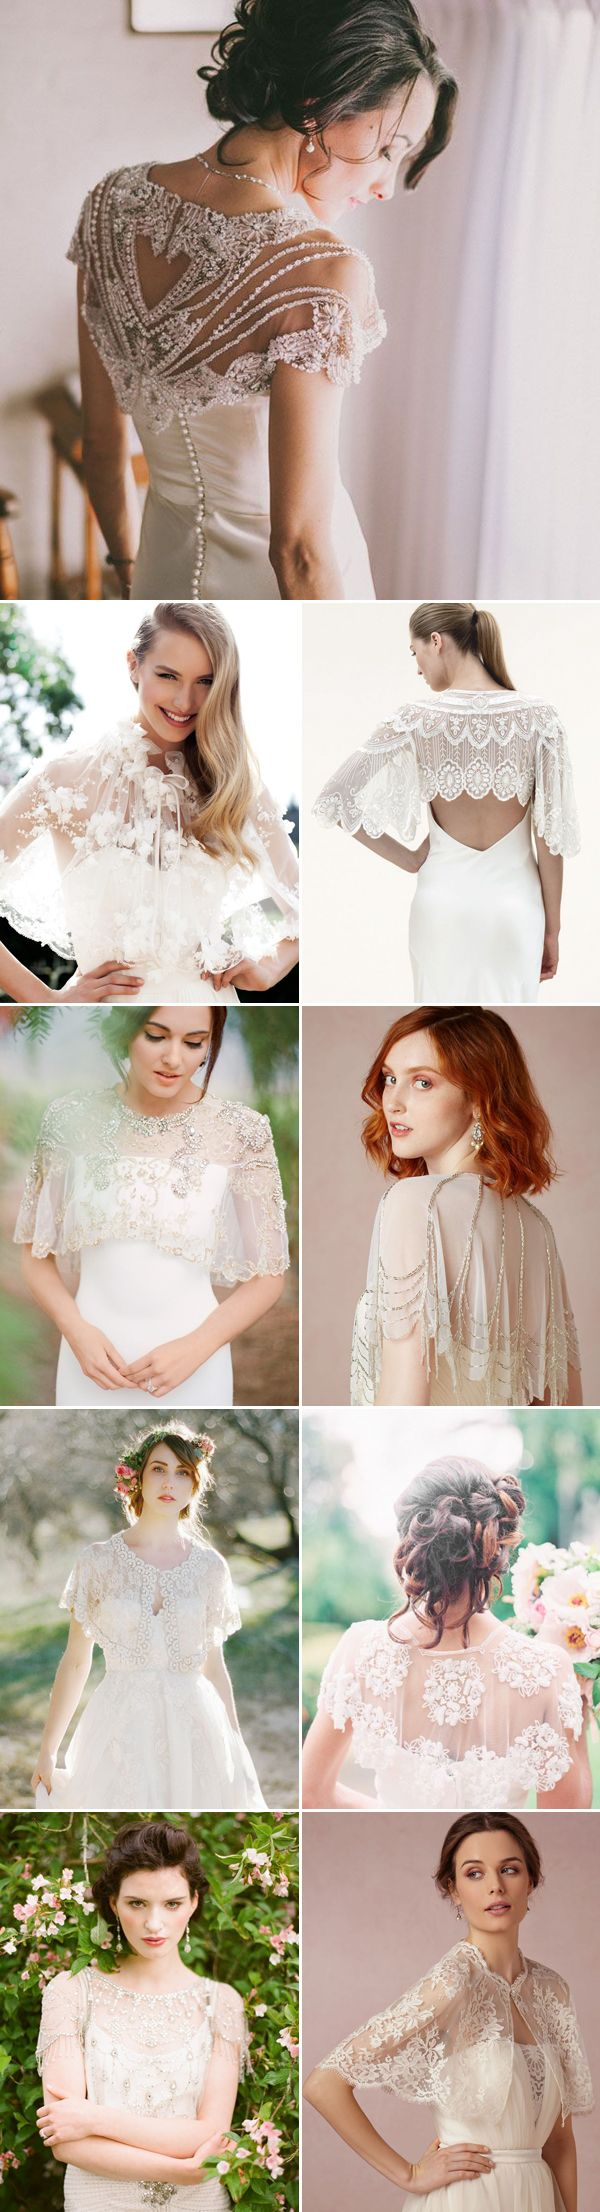 Pretty Ways to Keep the Bride Warm – 22 Chic Bridal Cover-Ups!